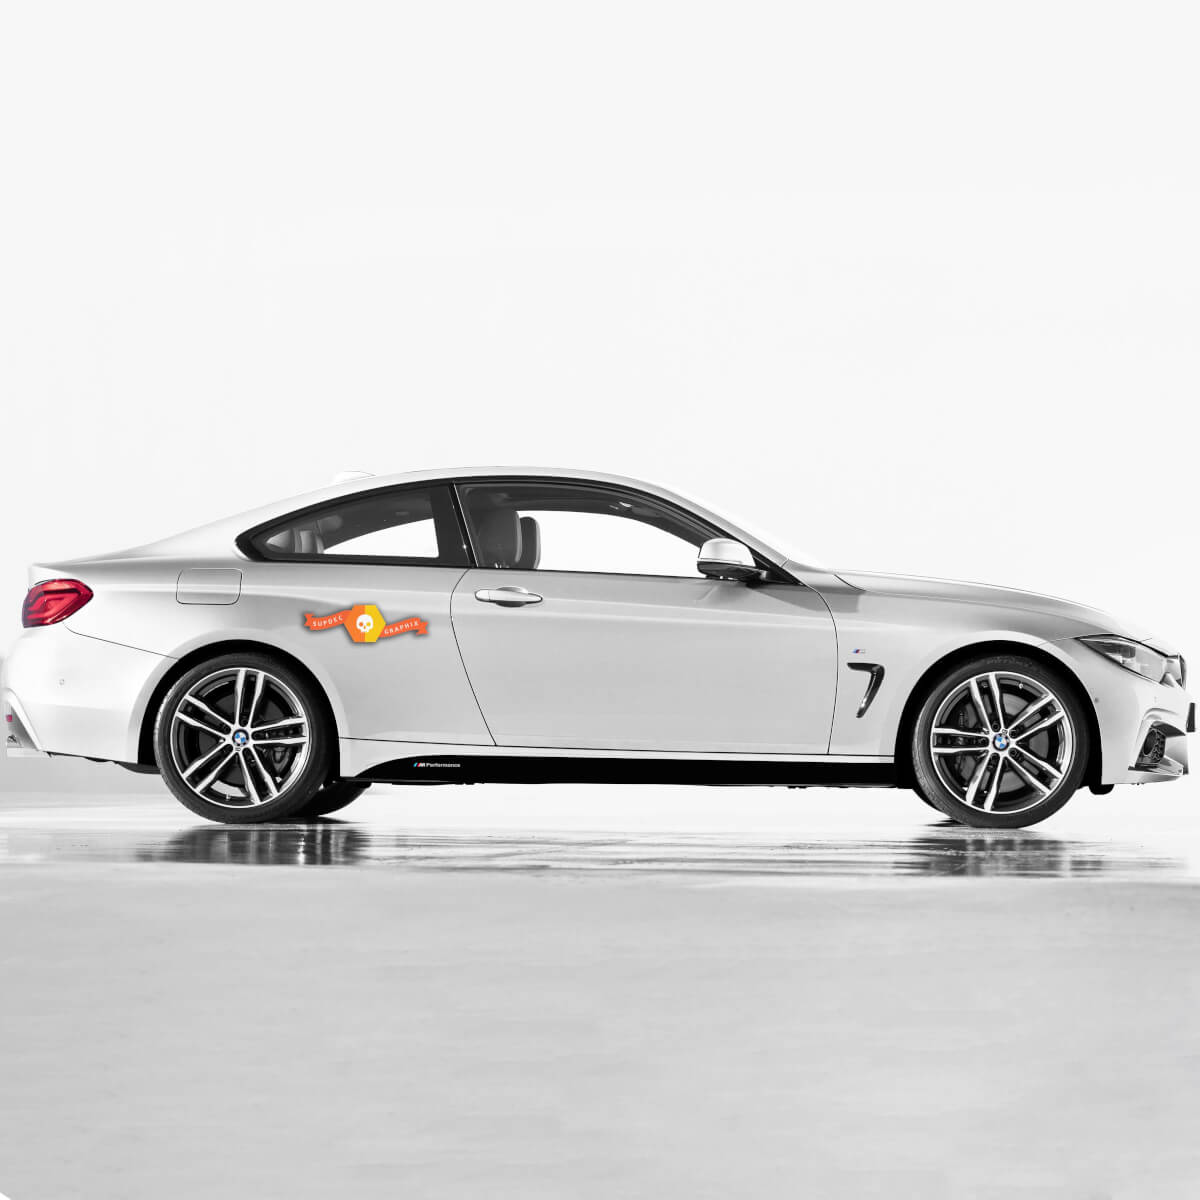 2 BMW M Performance Set Of Side Stripes For M4 F30 F31 F32 F33 F35 F36